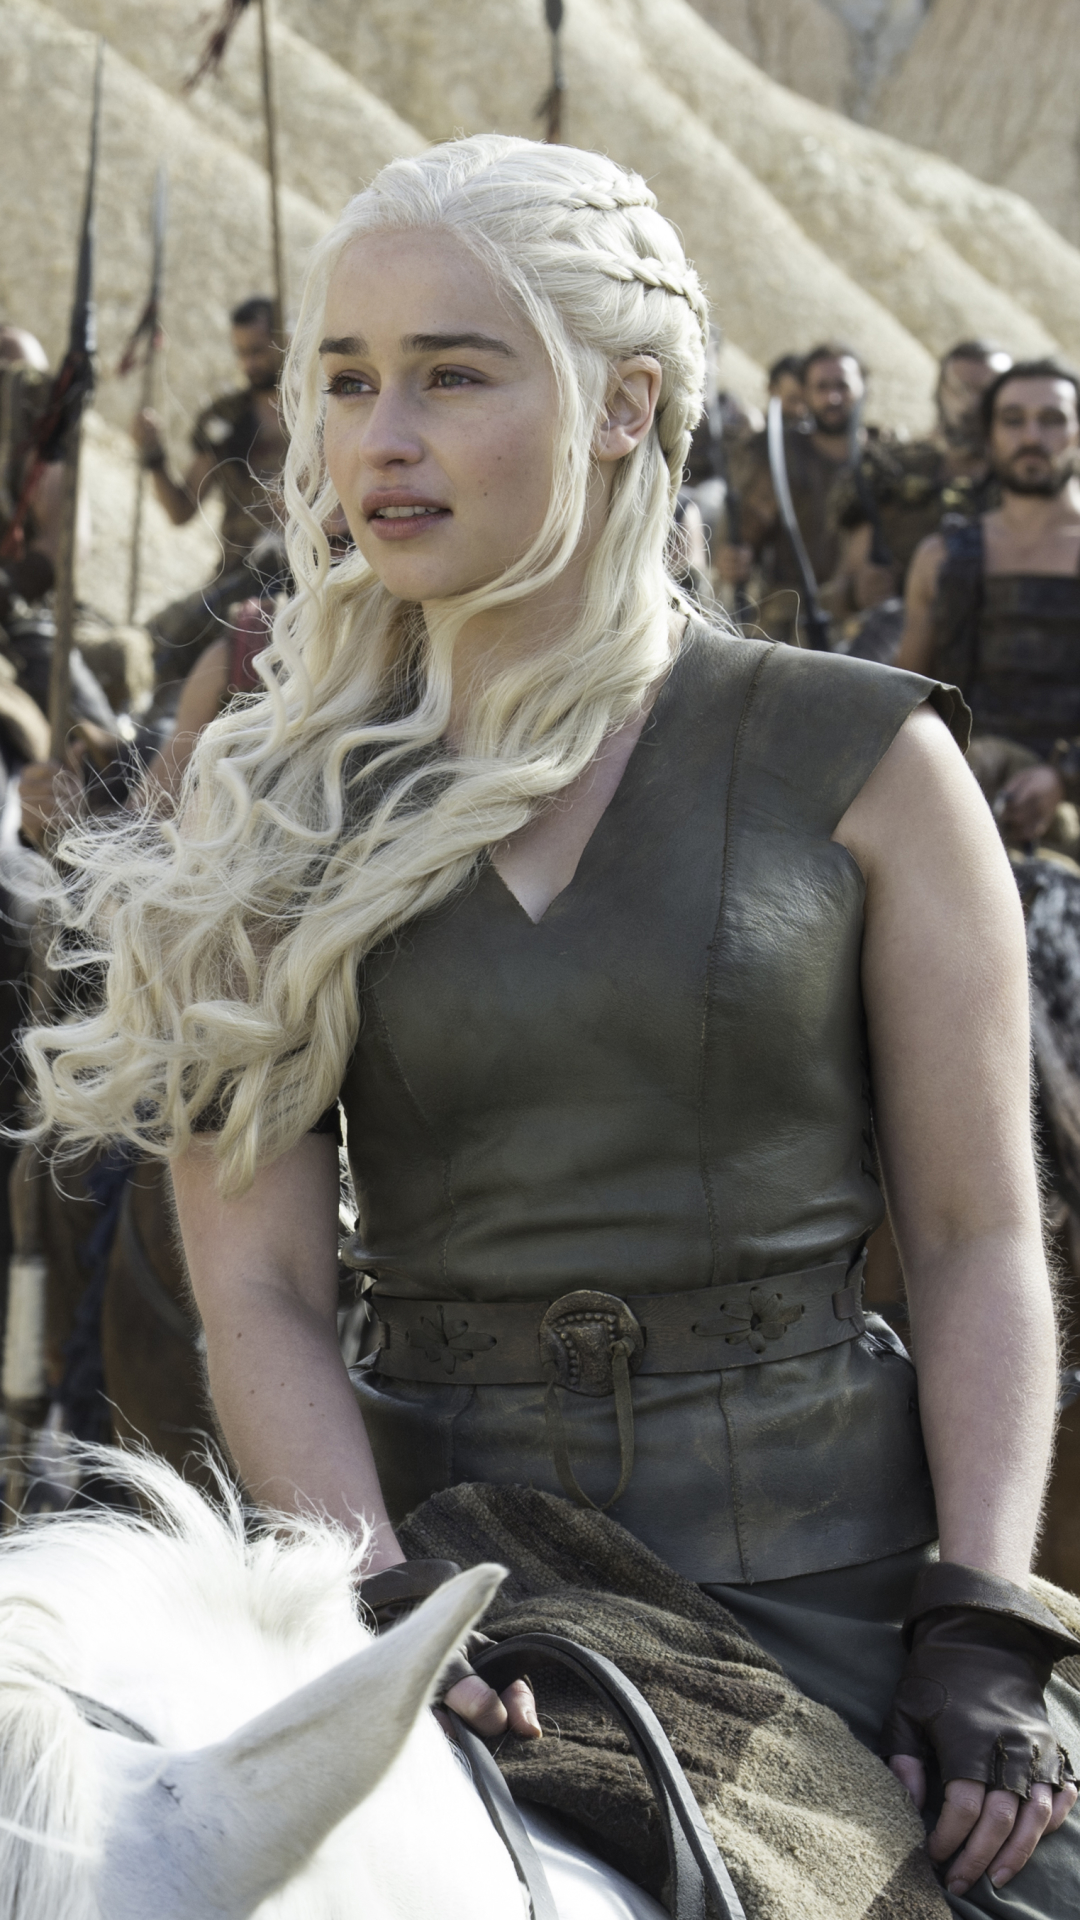 Tv Show Game Of Thrones 1080x1920 Wallpaper Id 667963 Mobile